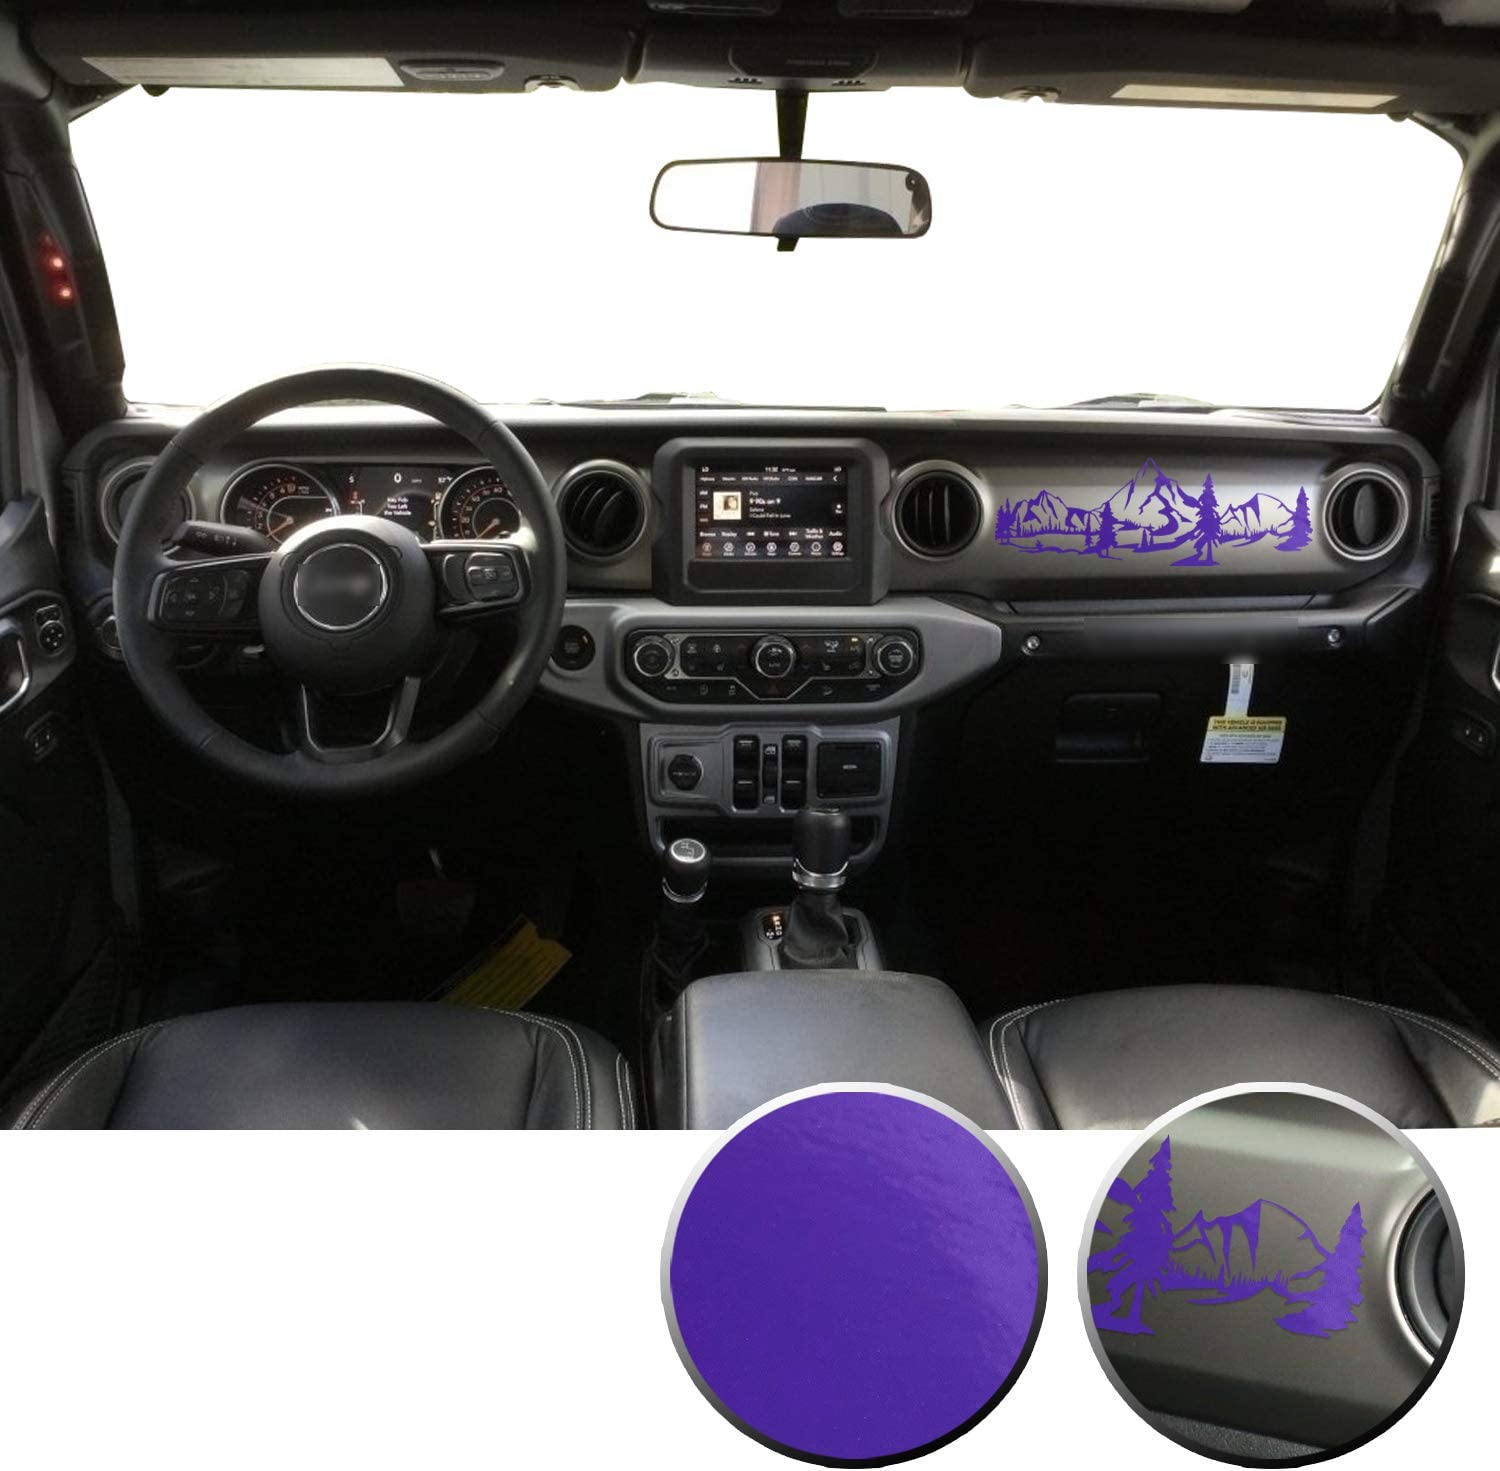 Optix Dashboard Interior Trim Mountain Vinyl Graphic Overlay Wrap Decal Compatible with Wrangler JL 2018 2019 2020 - Gloss Purple